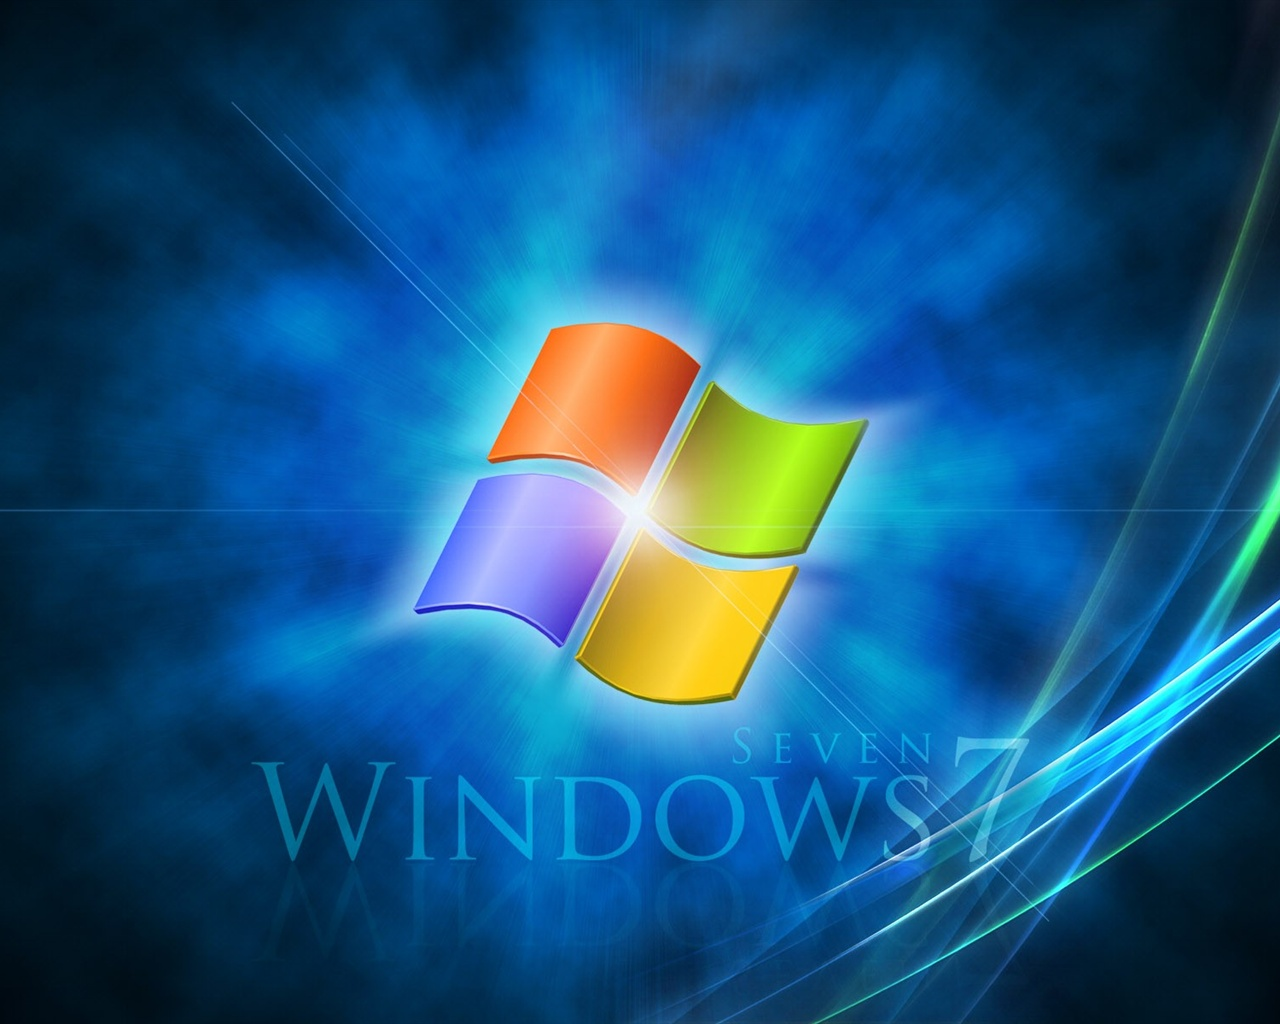 Wallpaper Windows 7 Blue Imagination 1920x1200 Hd Picture Image